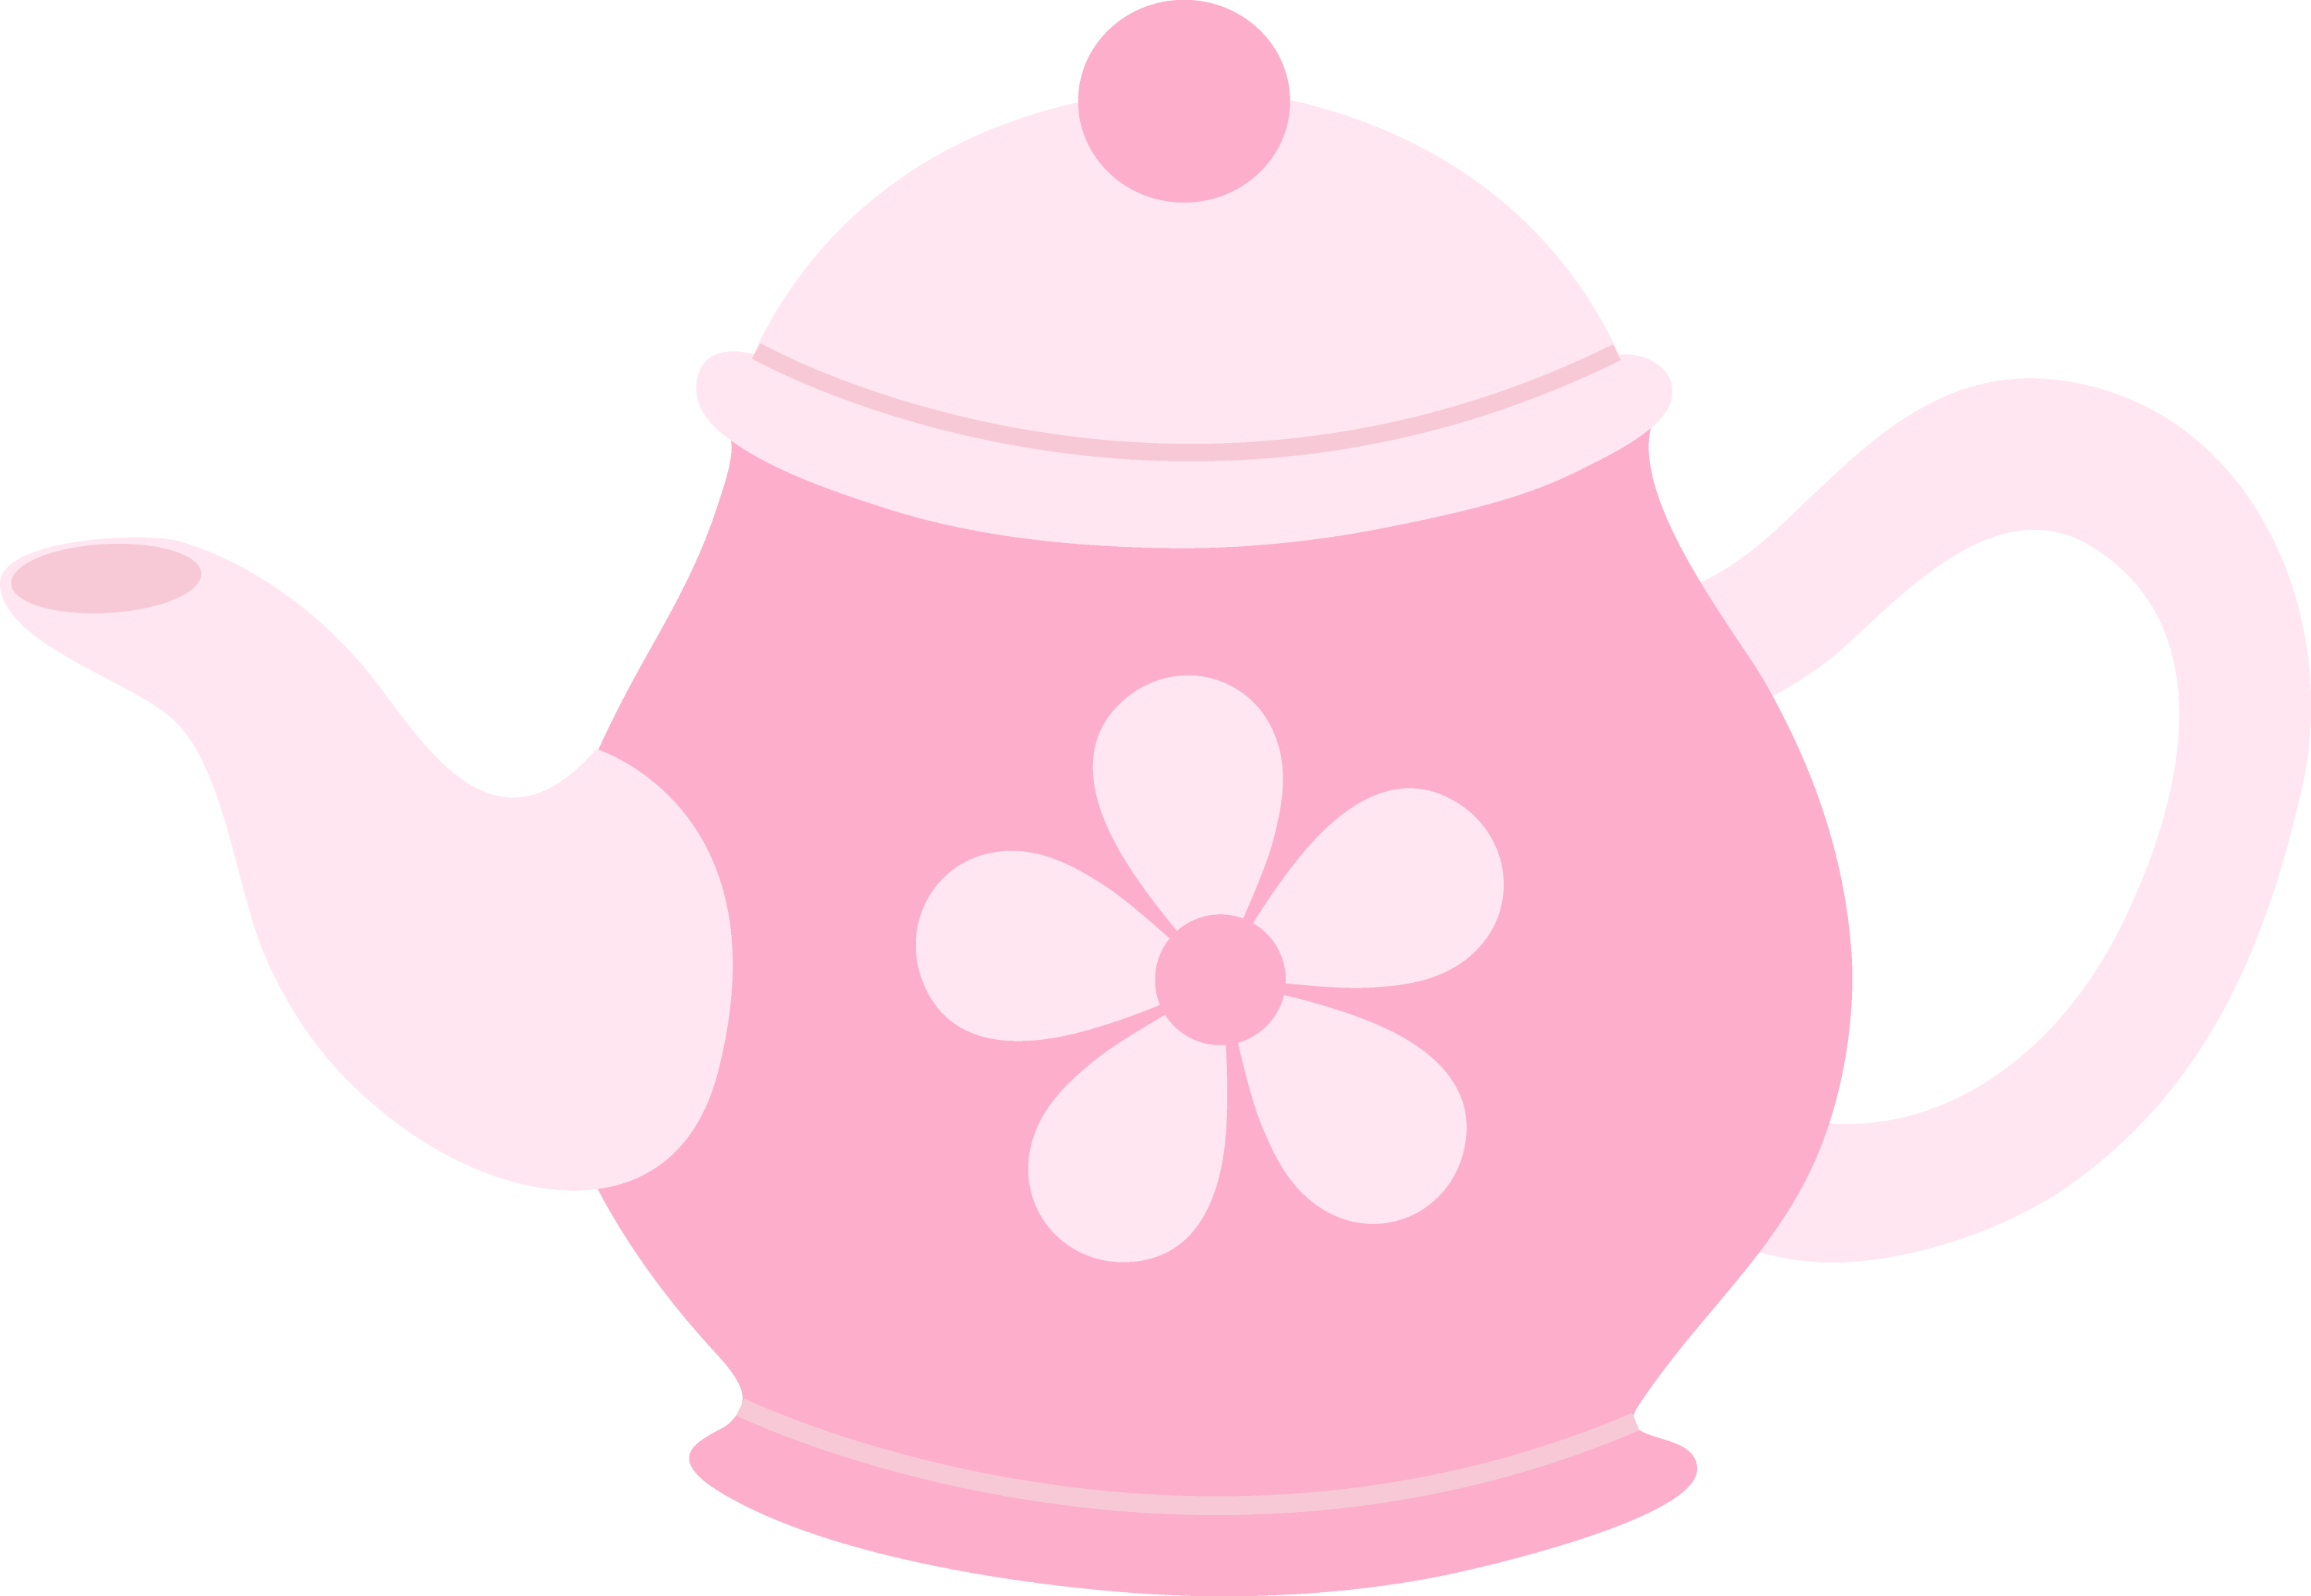 pink teapot with flower free clip art rh sweetclipart com teapot clip art pictures tea pot clip art free